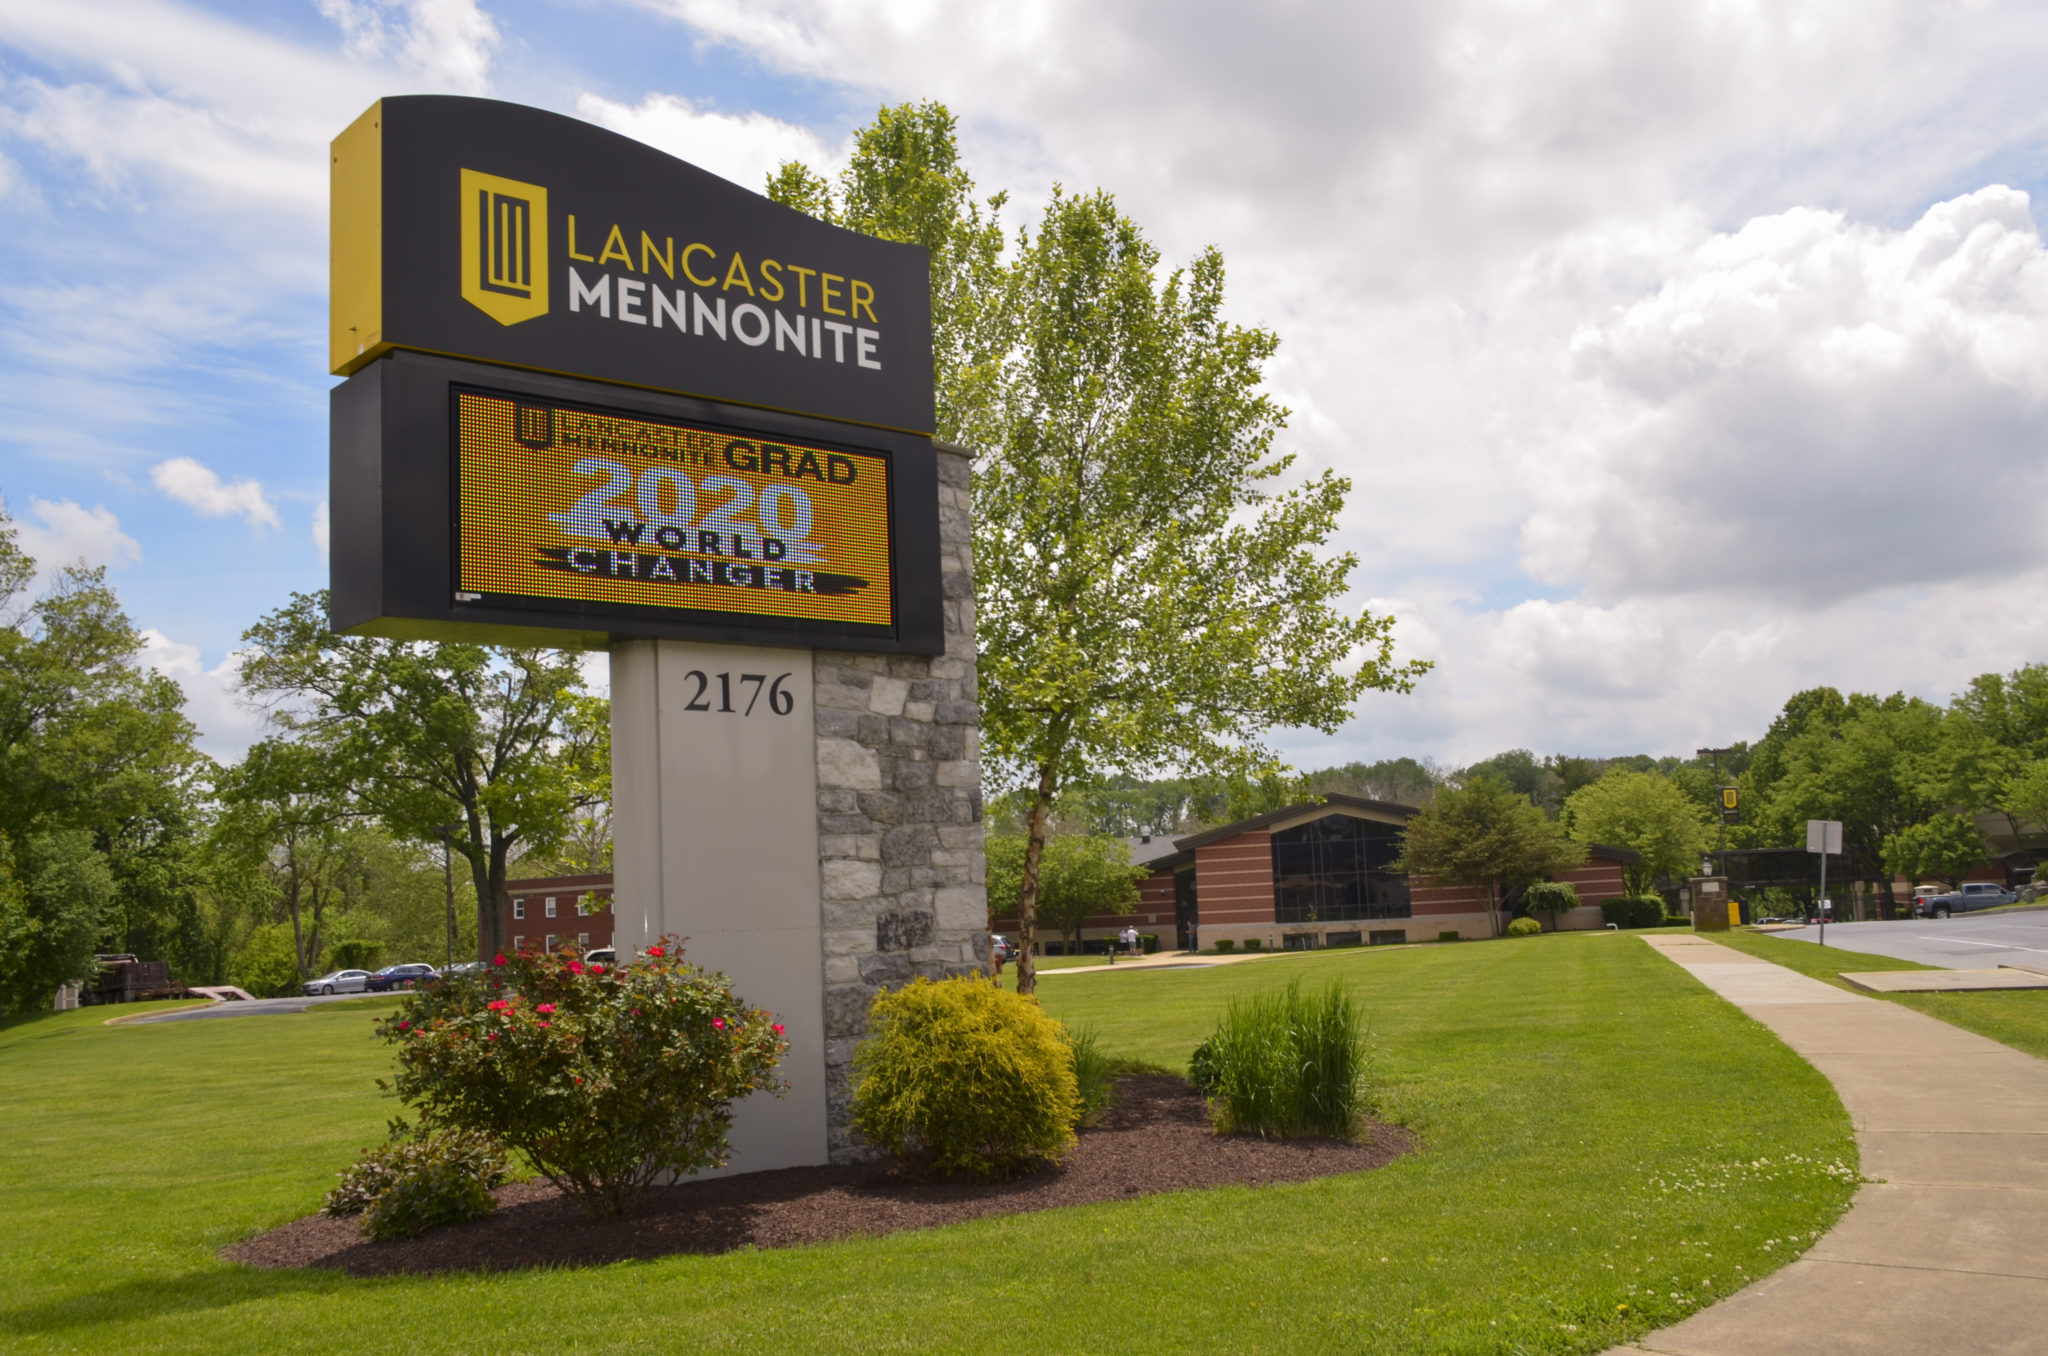 Road sign and campus view